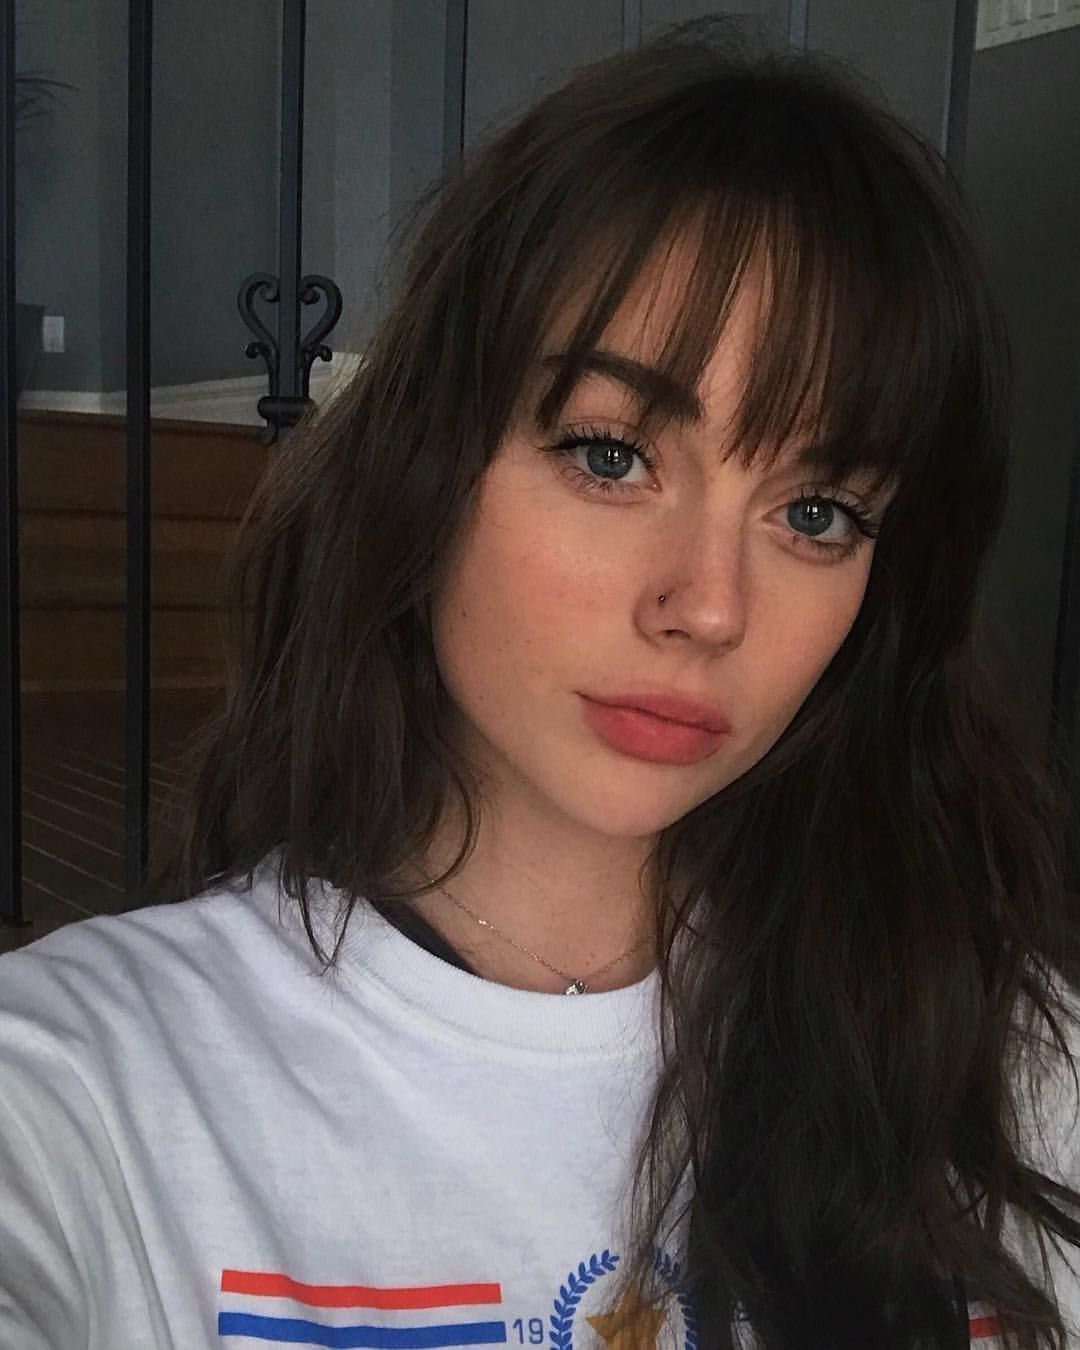 Best Hairstyles For Short Height Girls 2018 2019 Latest Fashion Trends Hottest Hairstyles Ideas Inspiration Medium Hair Styles Hair Styles Short Hair Styles